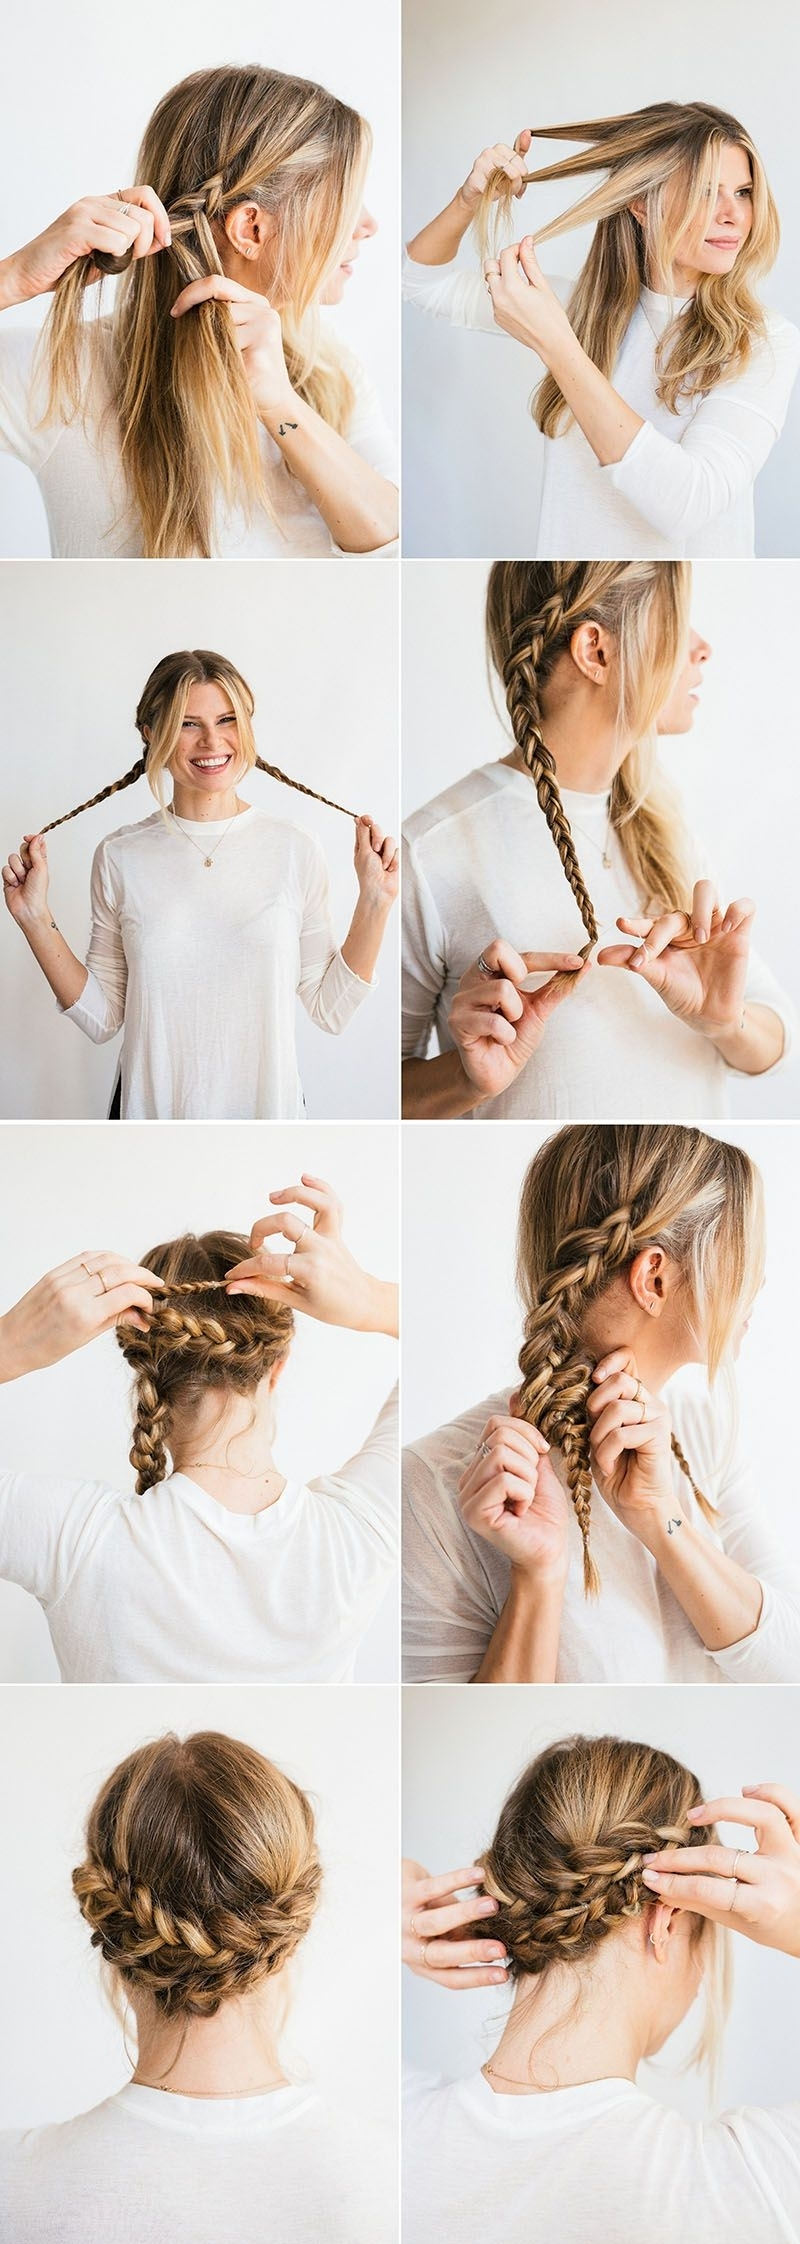 Horseshoe Braid | Simple Braids, Updo And Romantic Pertaining To Easy Braided Updo Hairstyles (View 3 of 15)